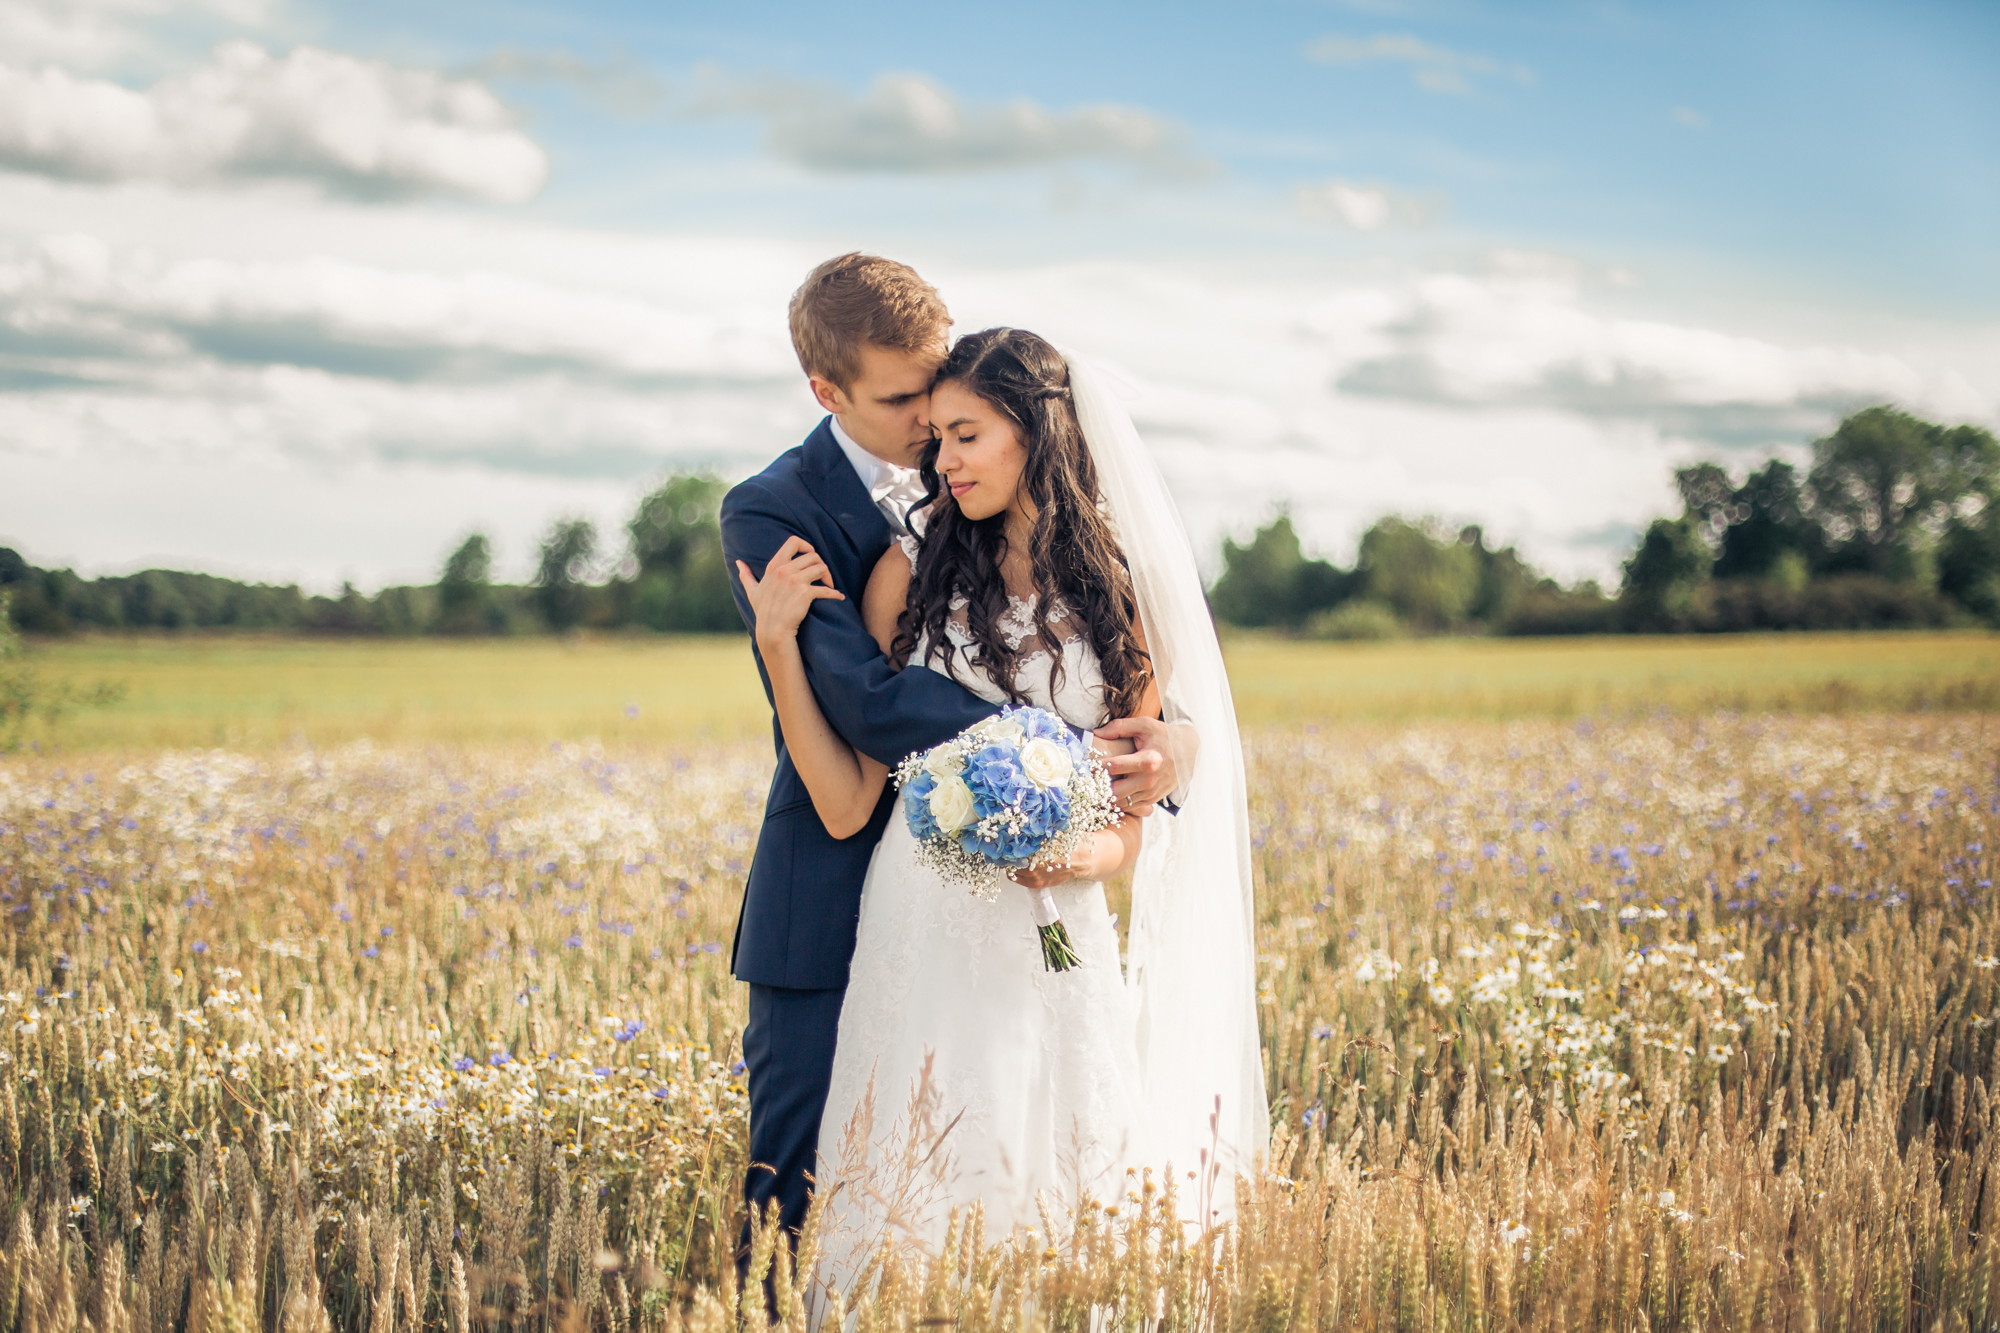 SNEAK PEEK: J♥J SUMMER WEDDING